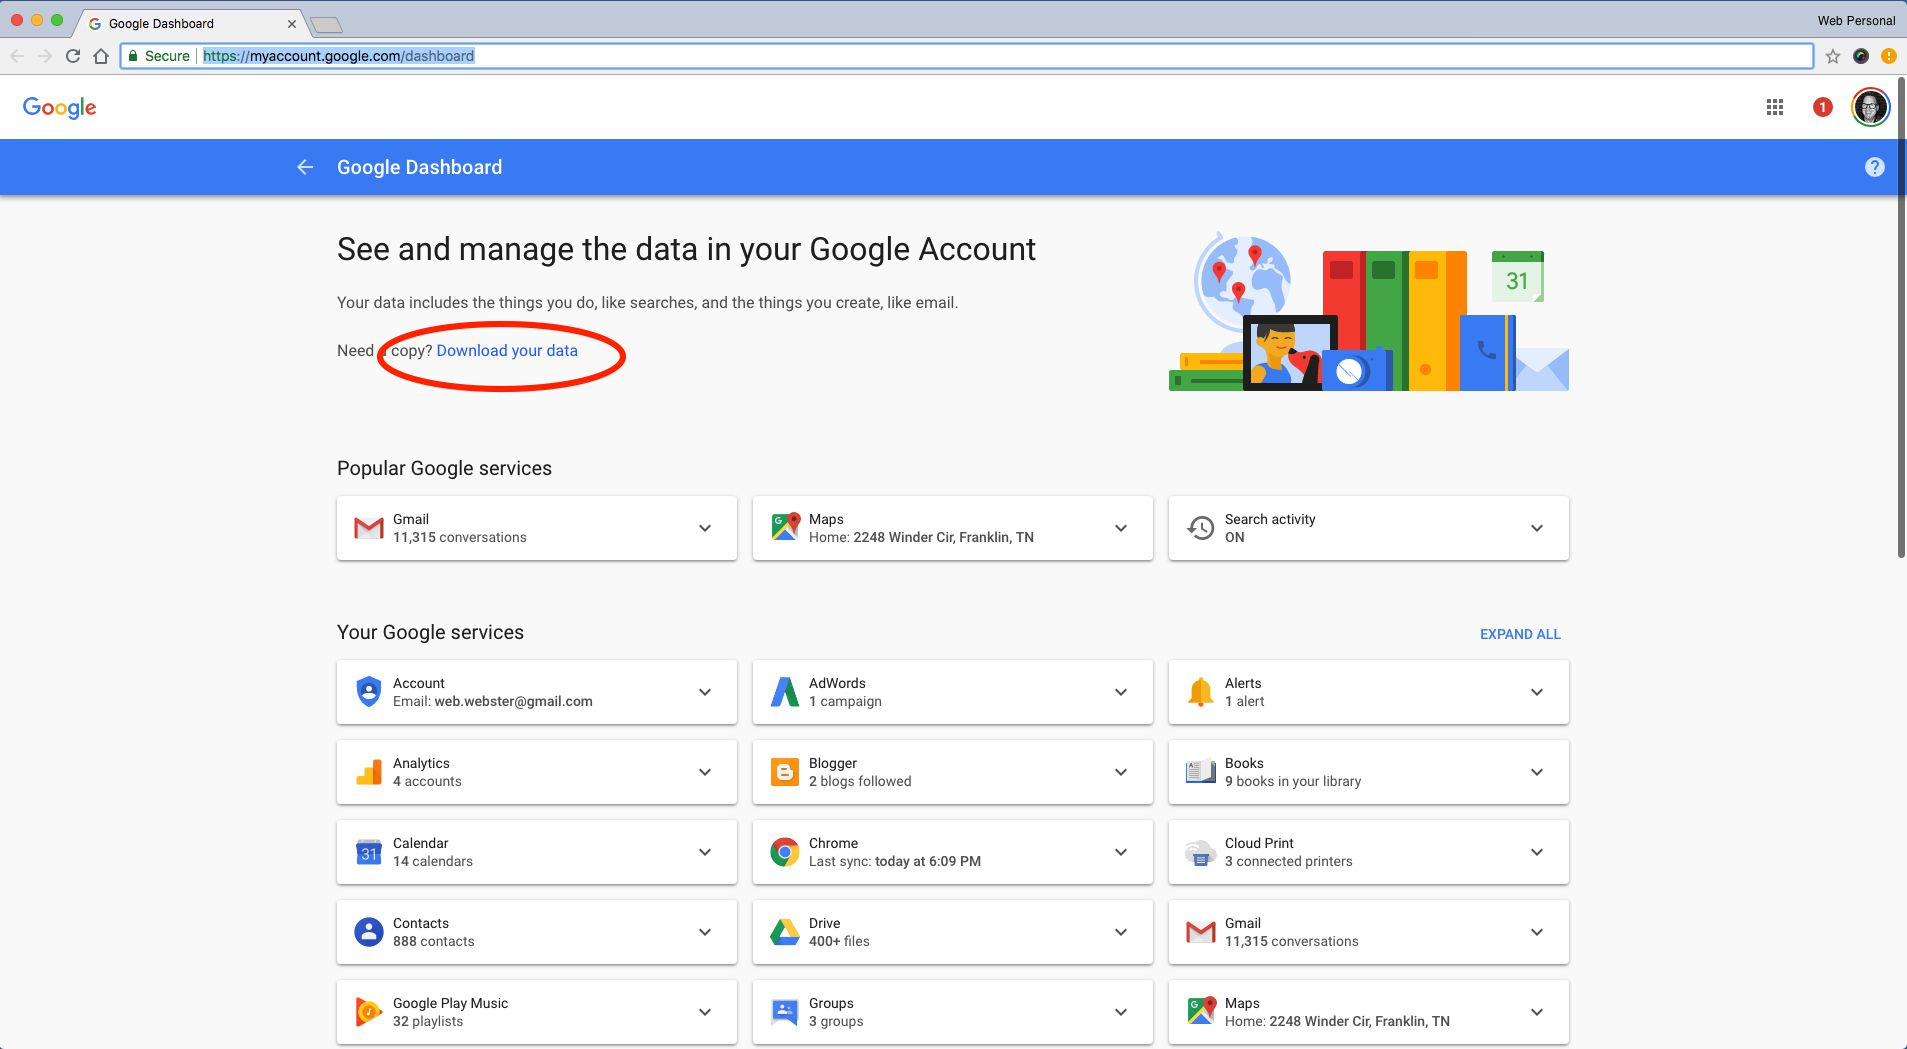 Google Takeout: Why You Need It and How to Use It